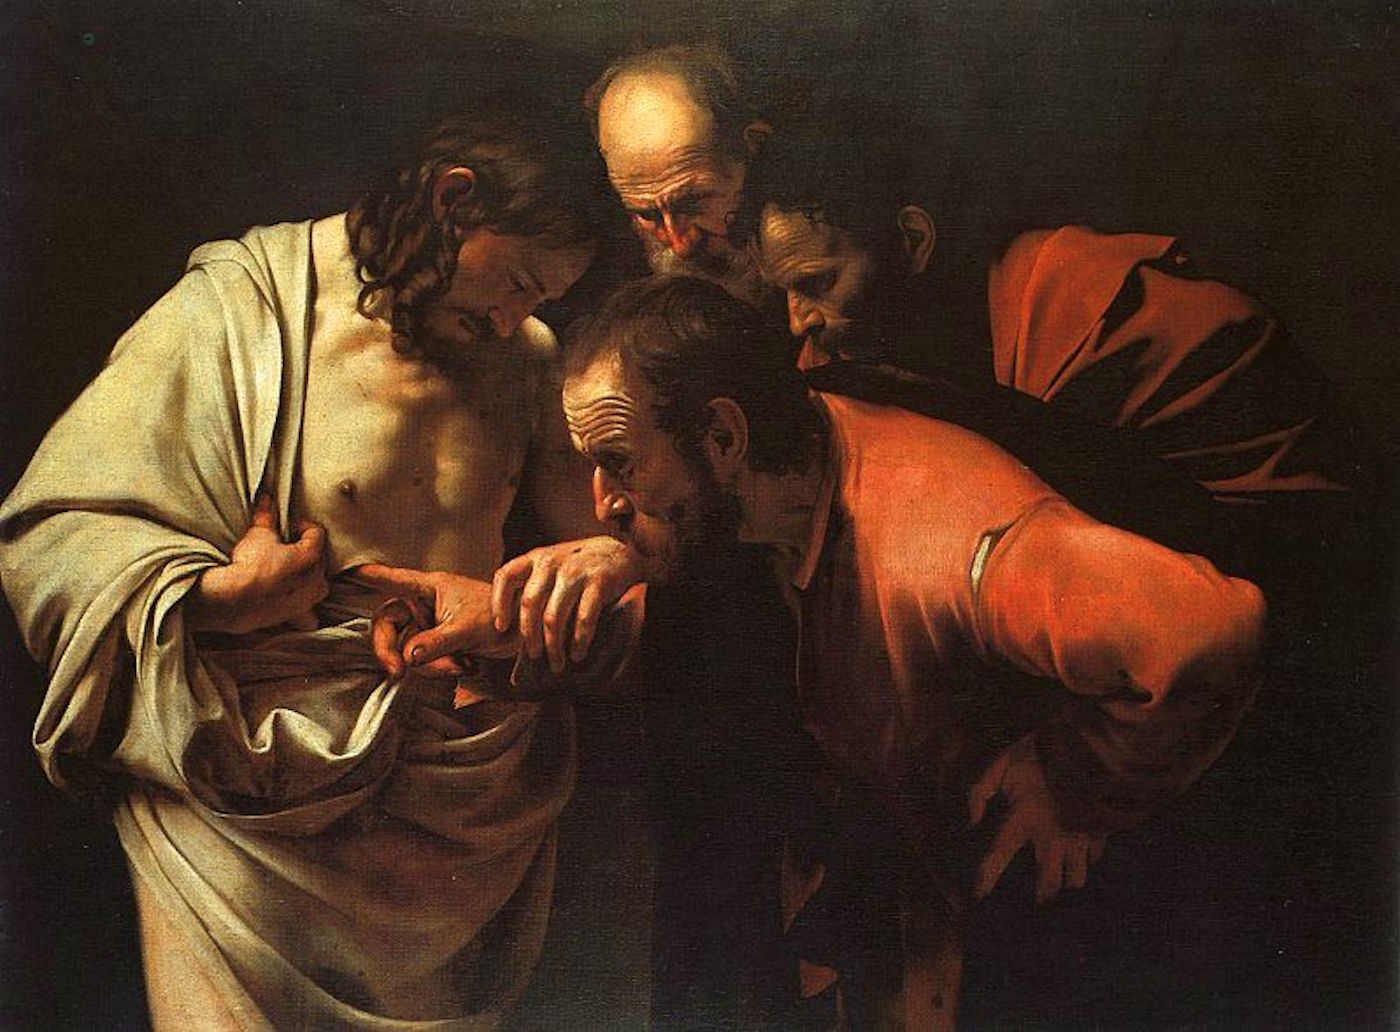 Doubting Thomas putting his fingers in Jesus' side, painting